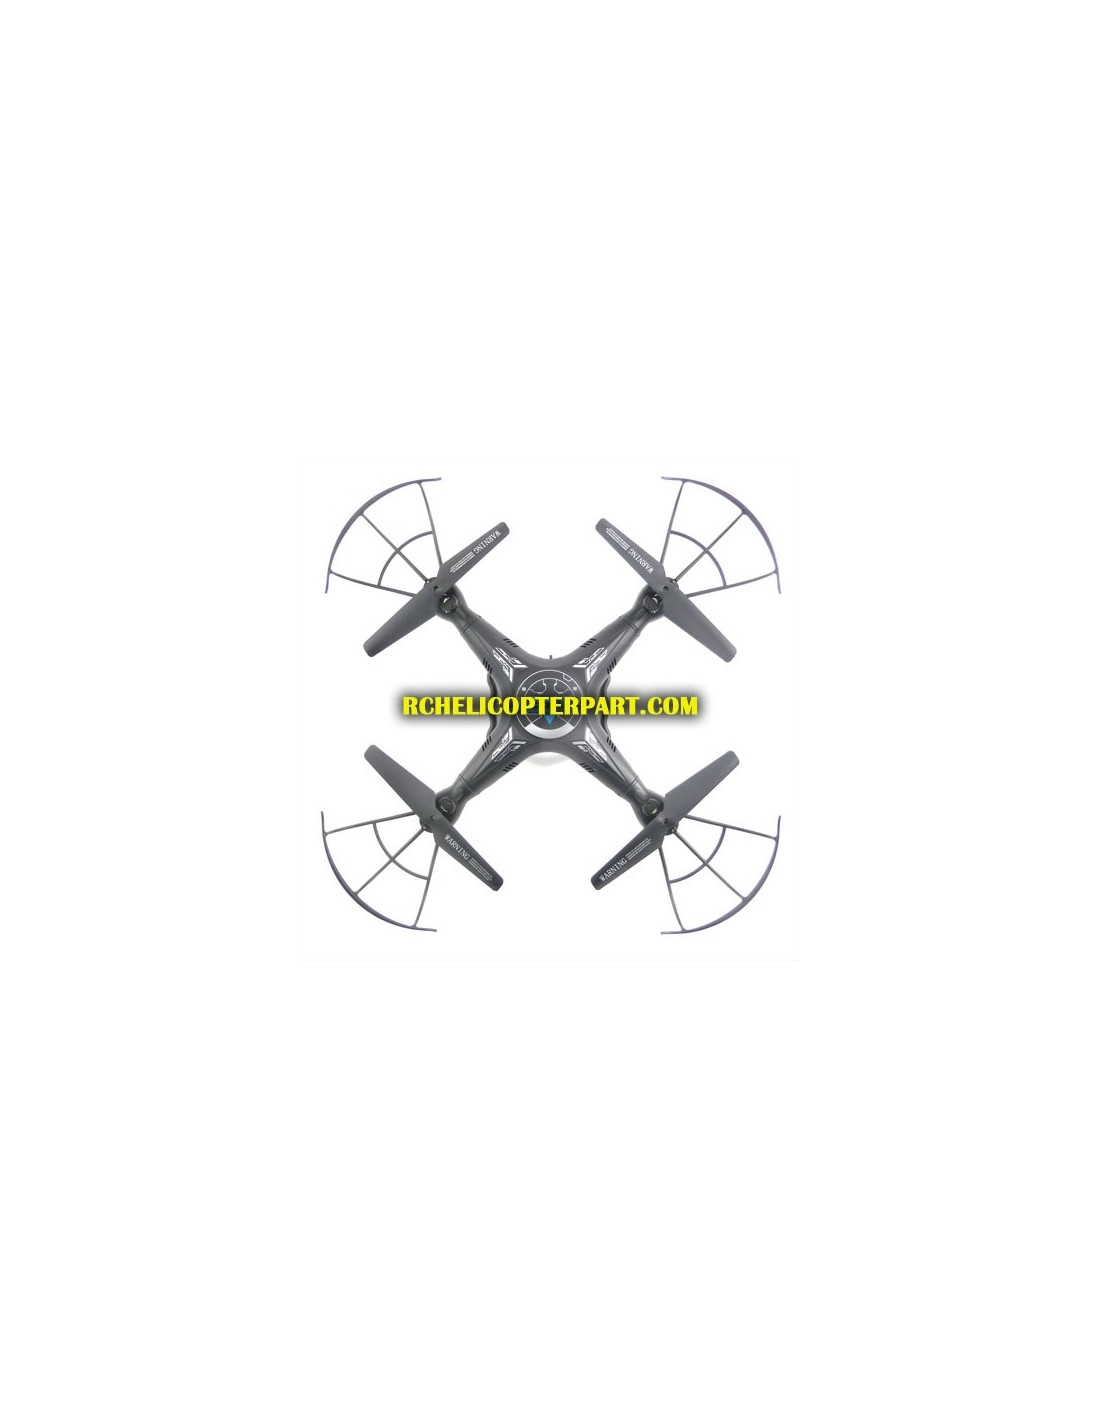 KOOME K300C 2.4GHz 4-Channel 6-Axis RC Drone Quad Copter w